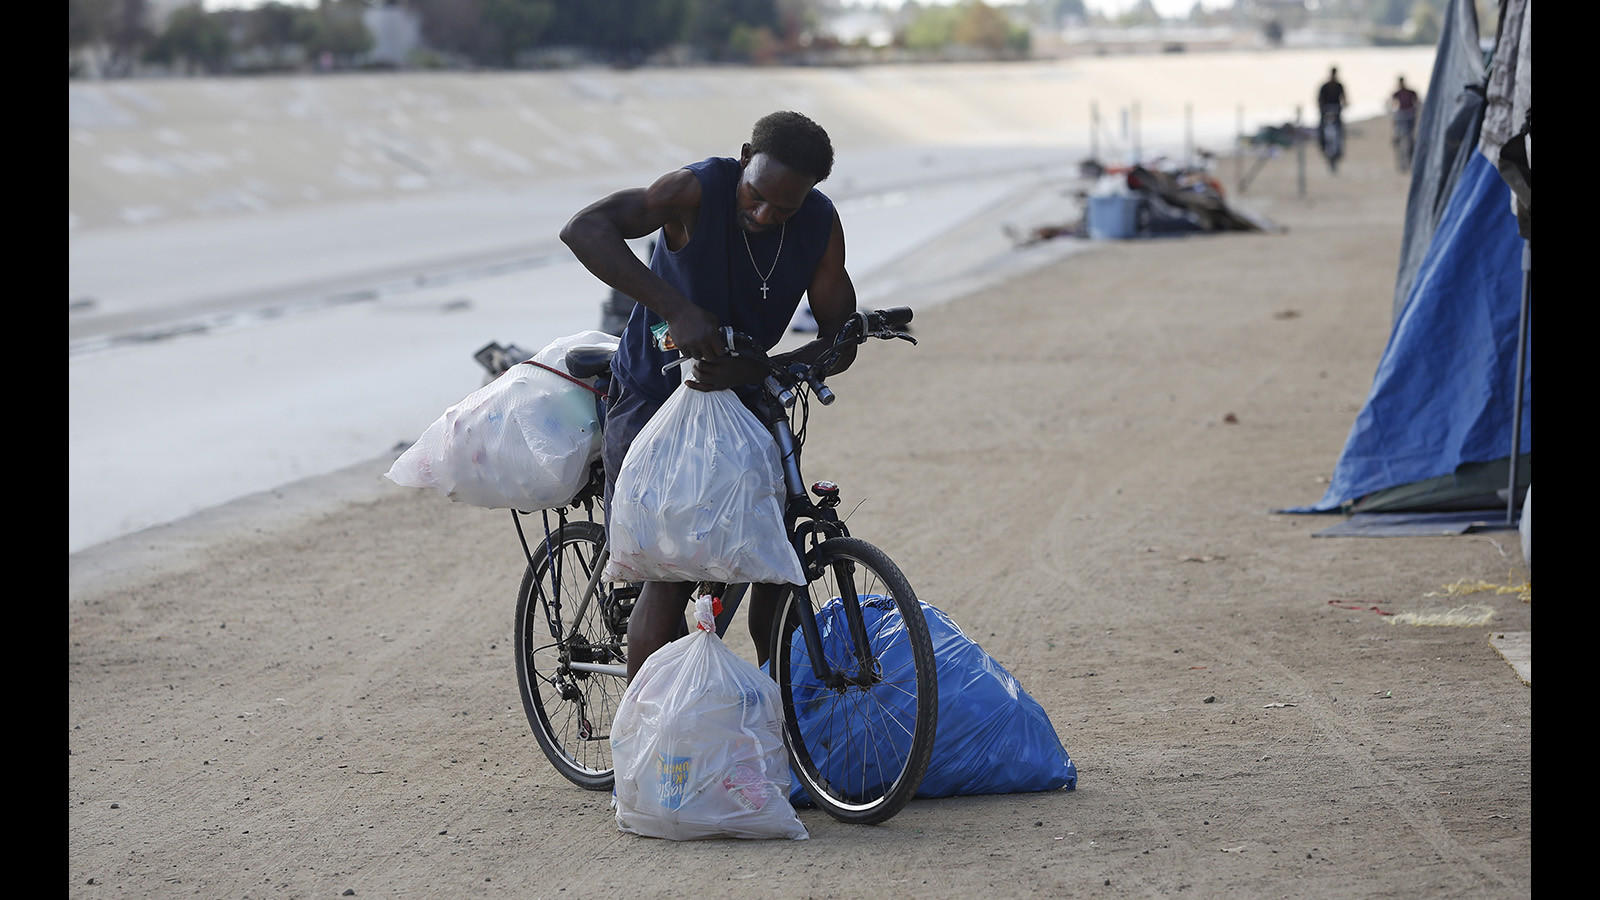 A man readies his belongings and bags of cans at a homeless encampment along the Santa Ana River trail in Fountain Valley.